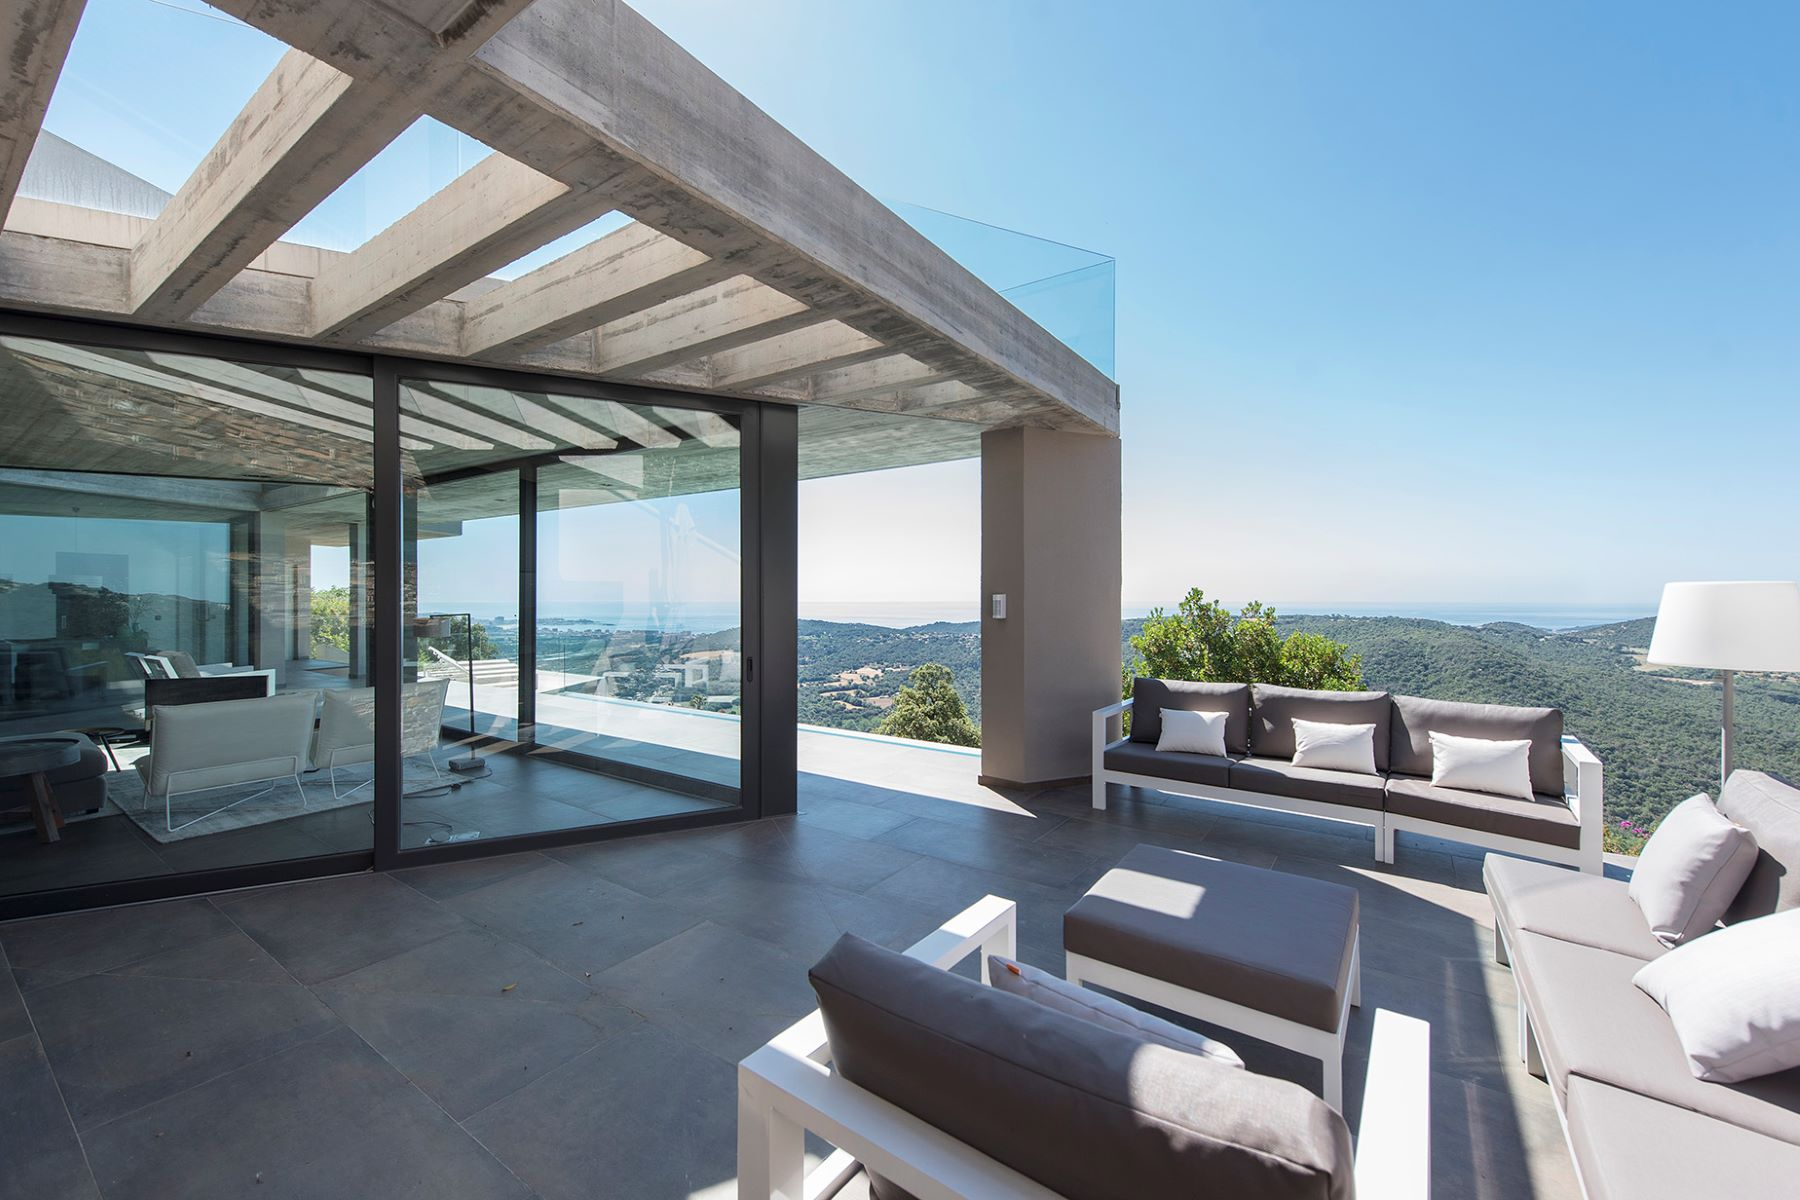 Single Family Home for Sale at Stunning house with spectacular views Sant Antoni De Calonge, Costa Brava, 17252 Spain